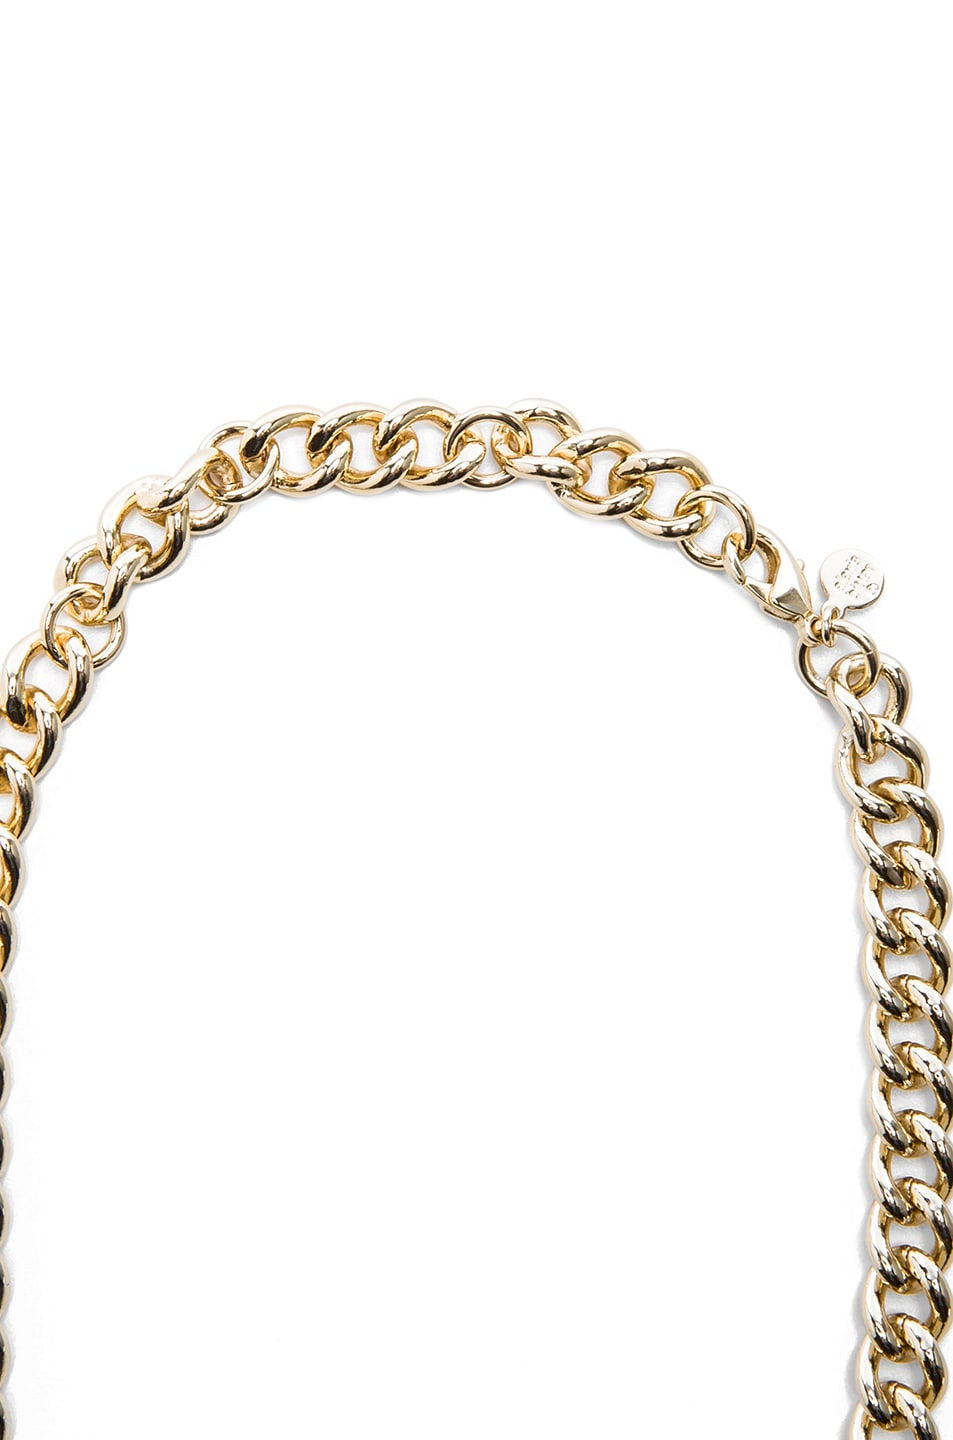 Image 2 of Alexis Bittar Neo Bohemian Lucite Curb Link Necklace in Gold